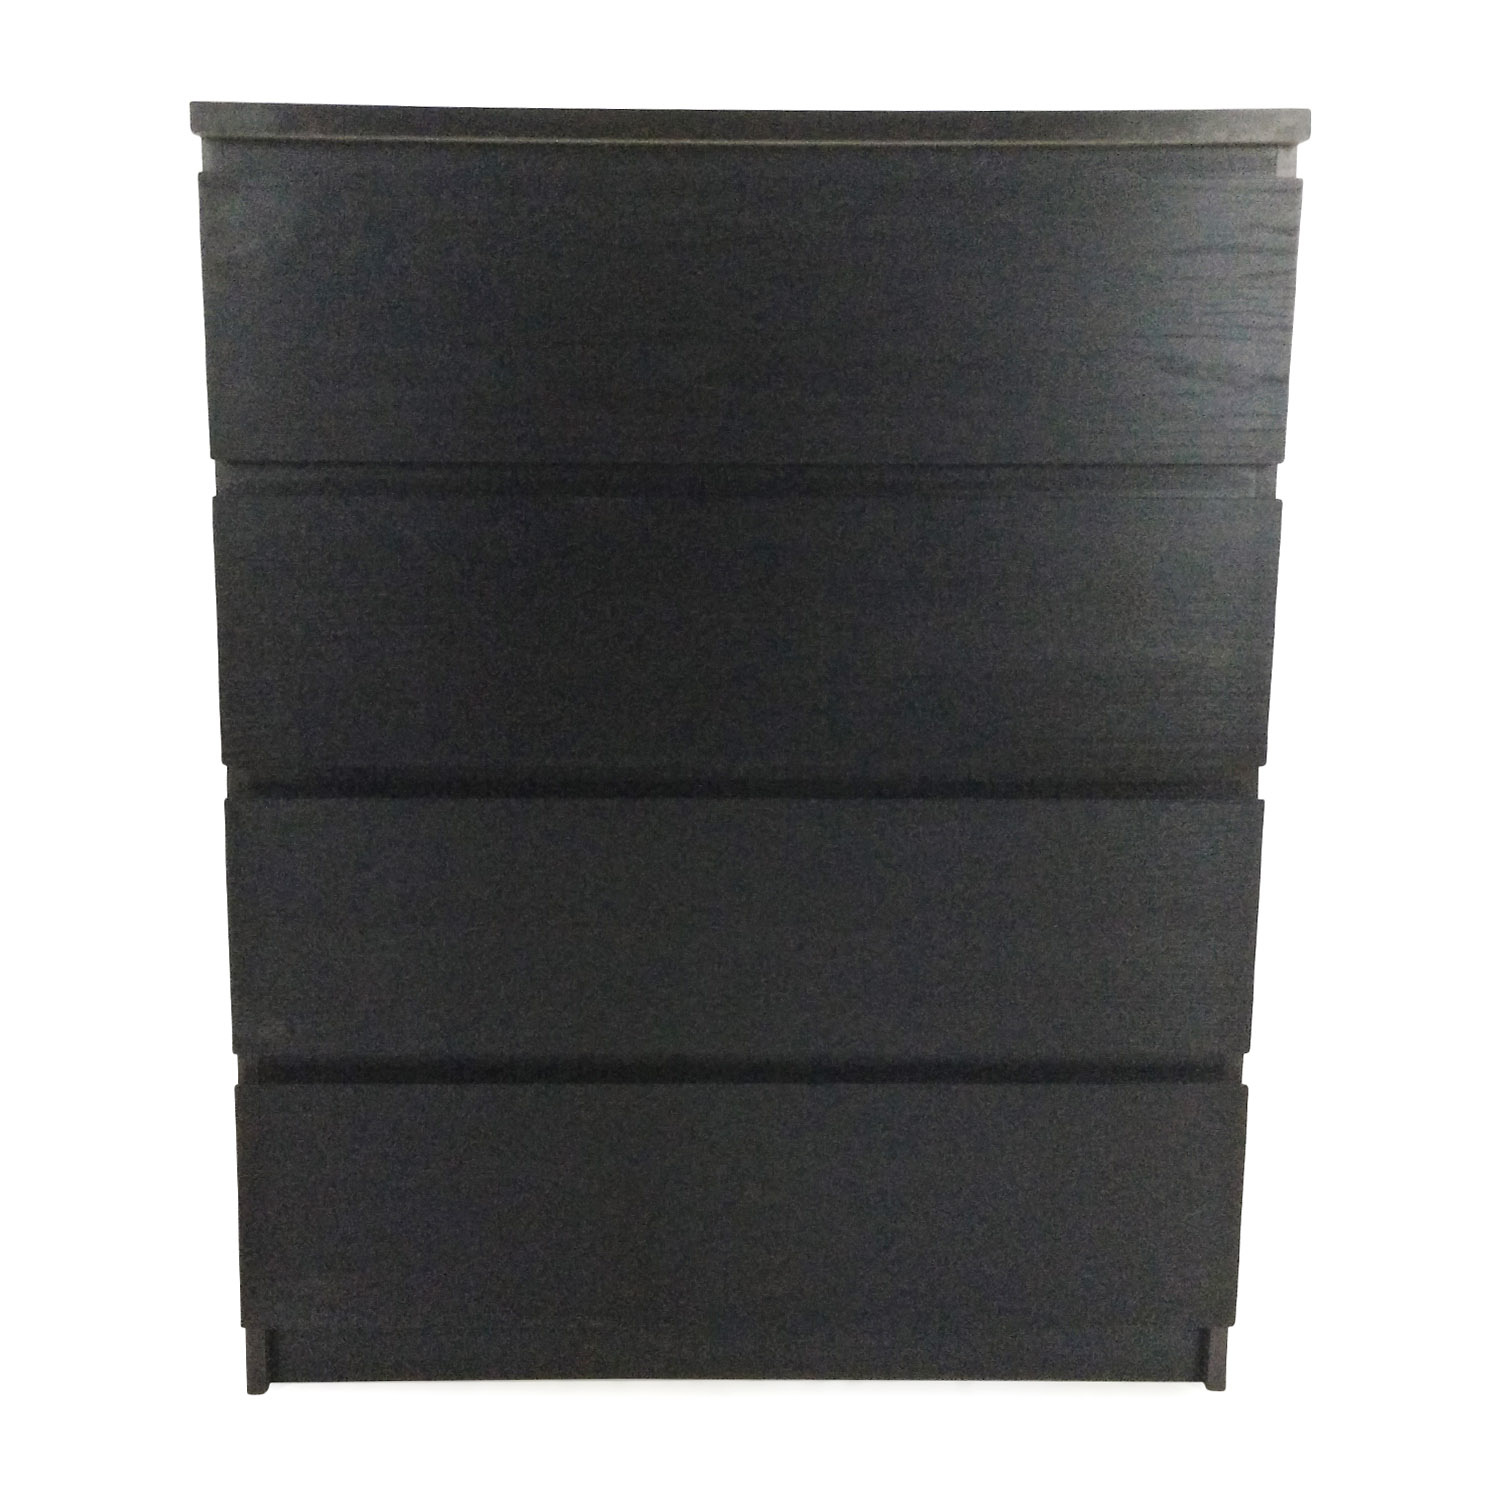 Ikea Malm Black 4 Drawer Dresser